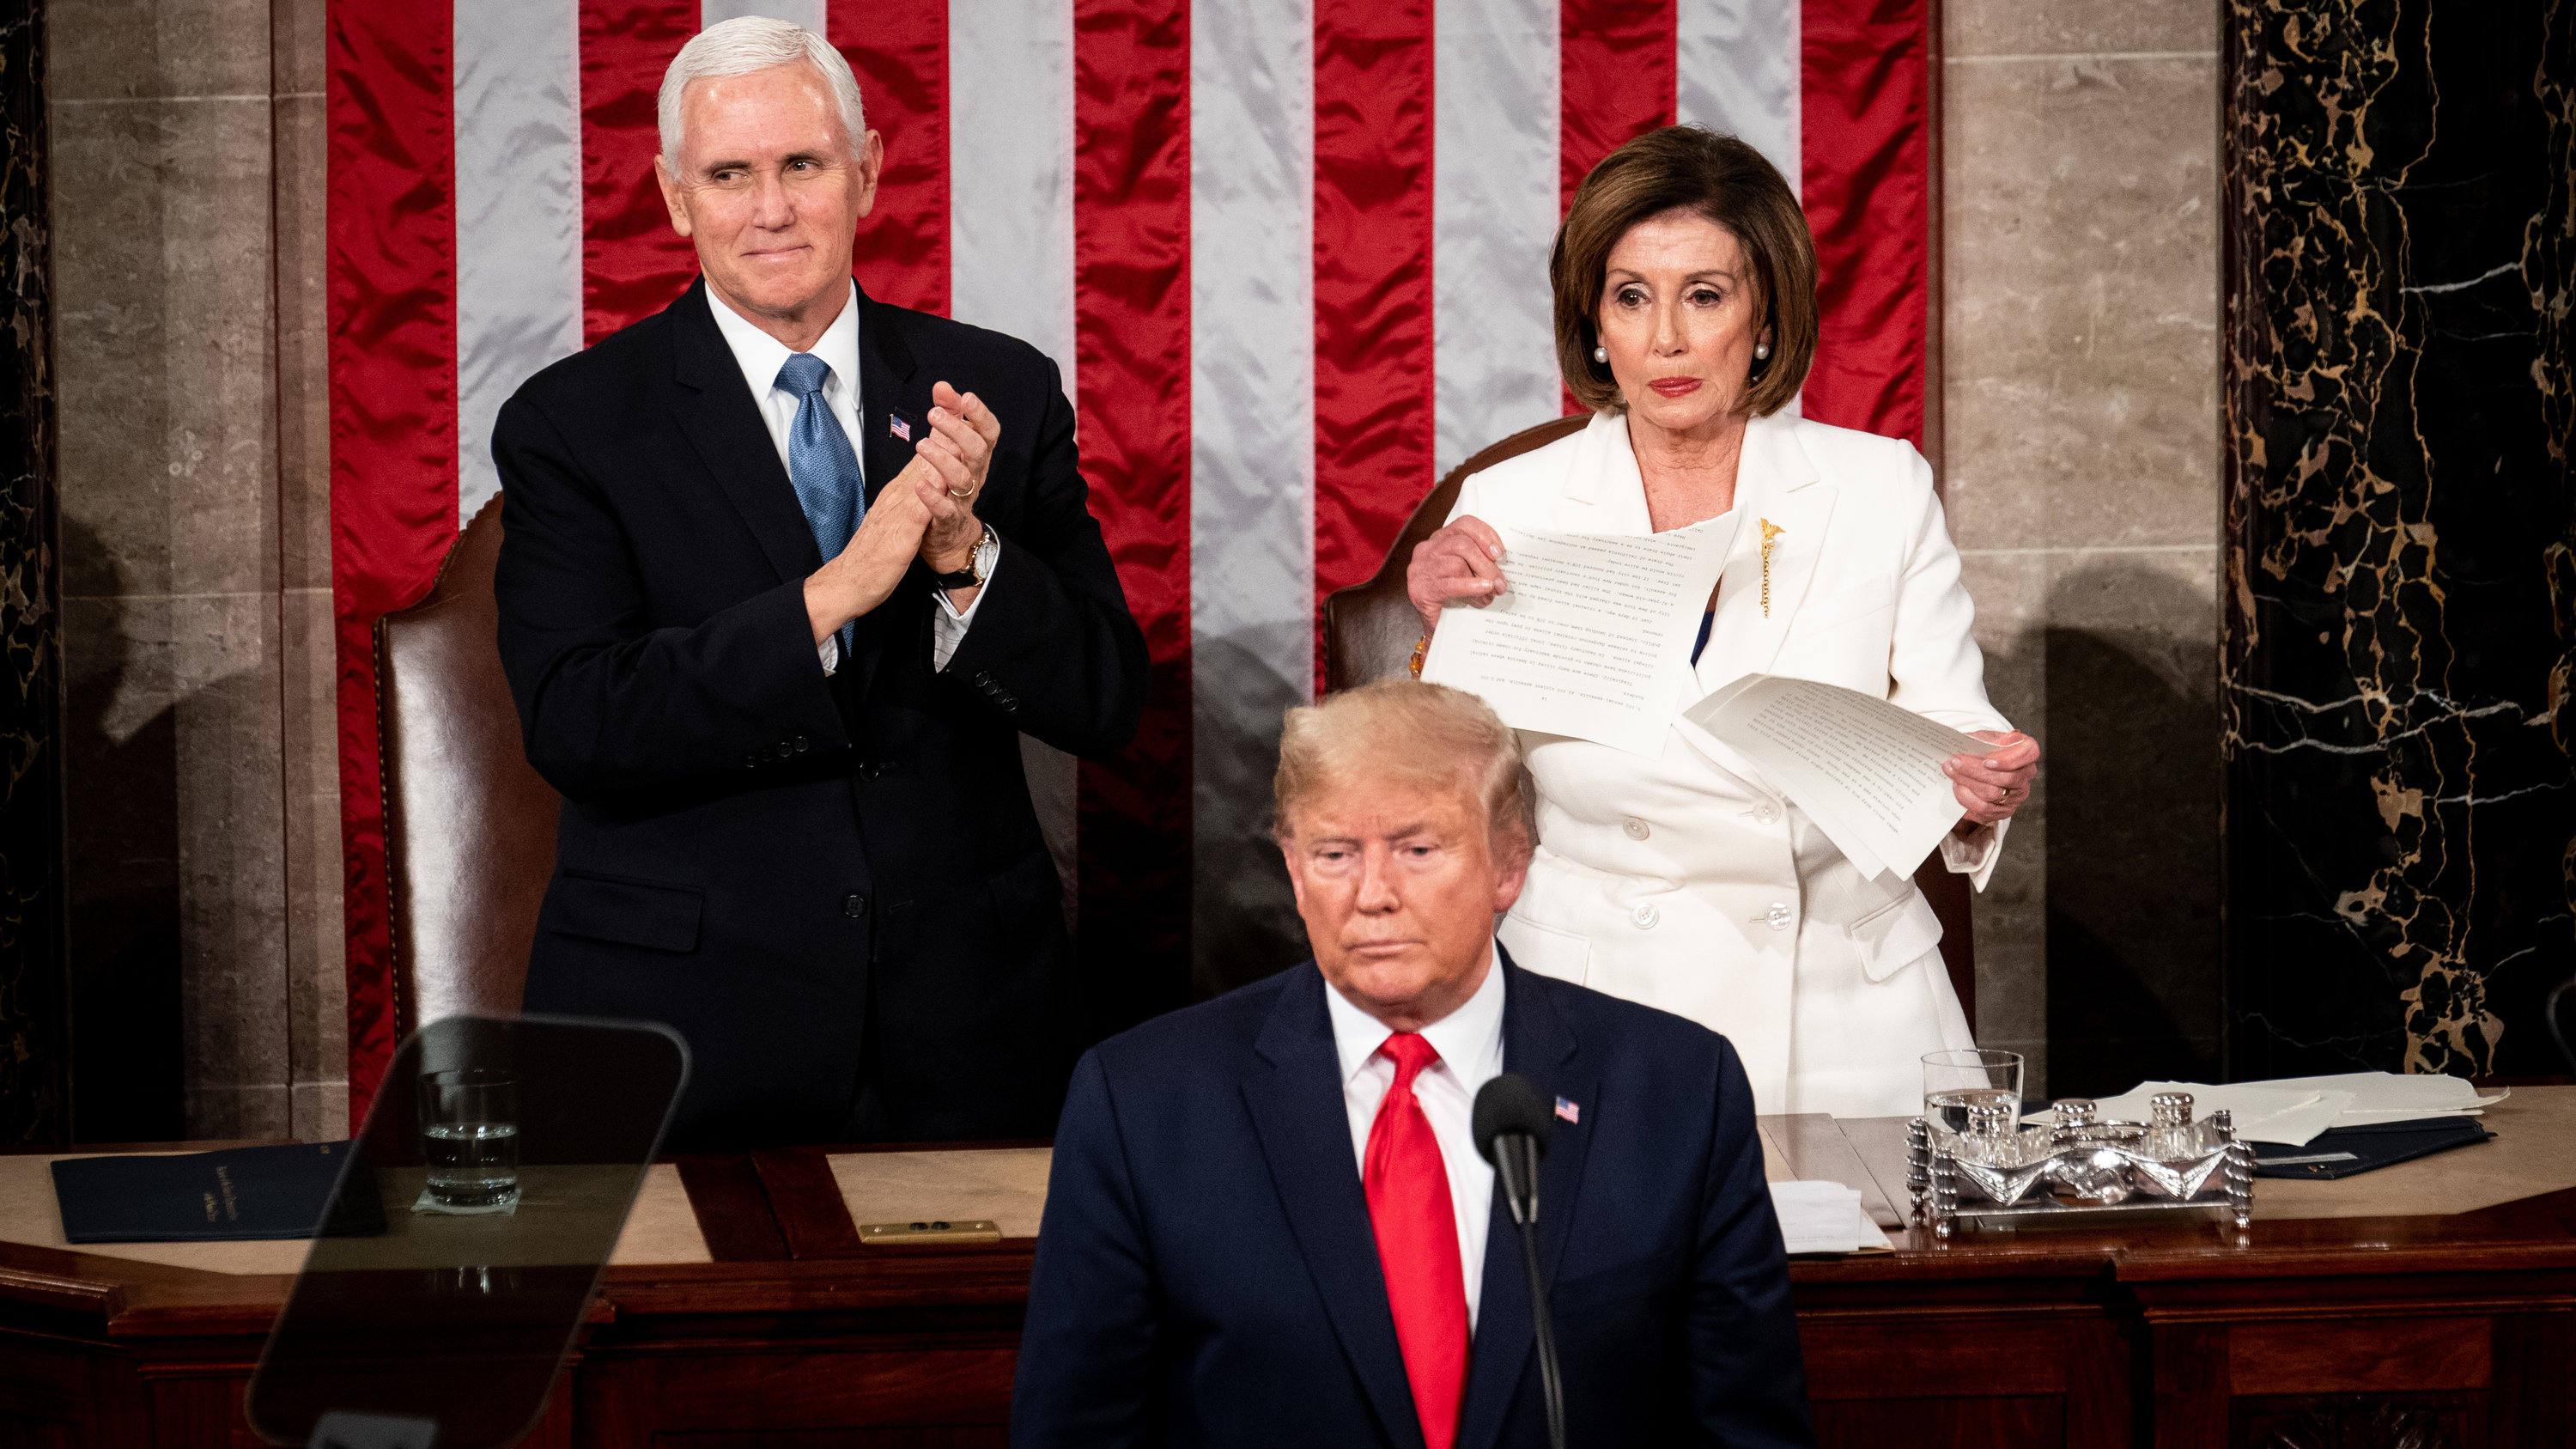 Trump And Pelosi Exchange Snubs At The State Of The Union Address